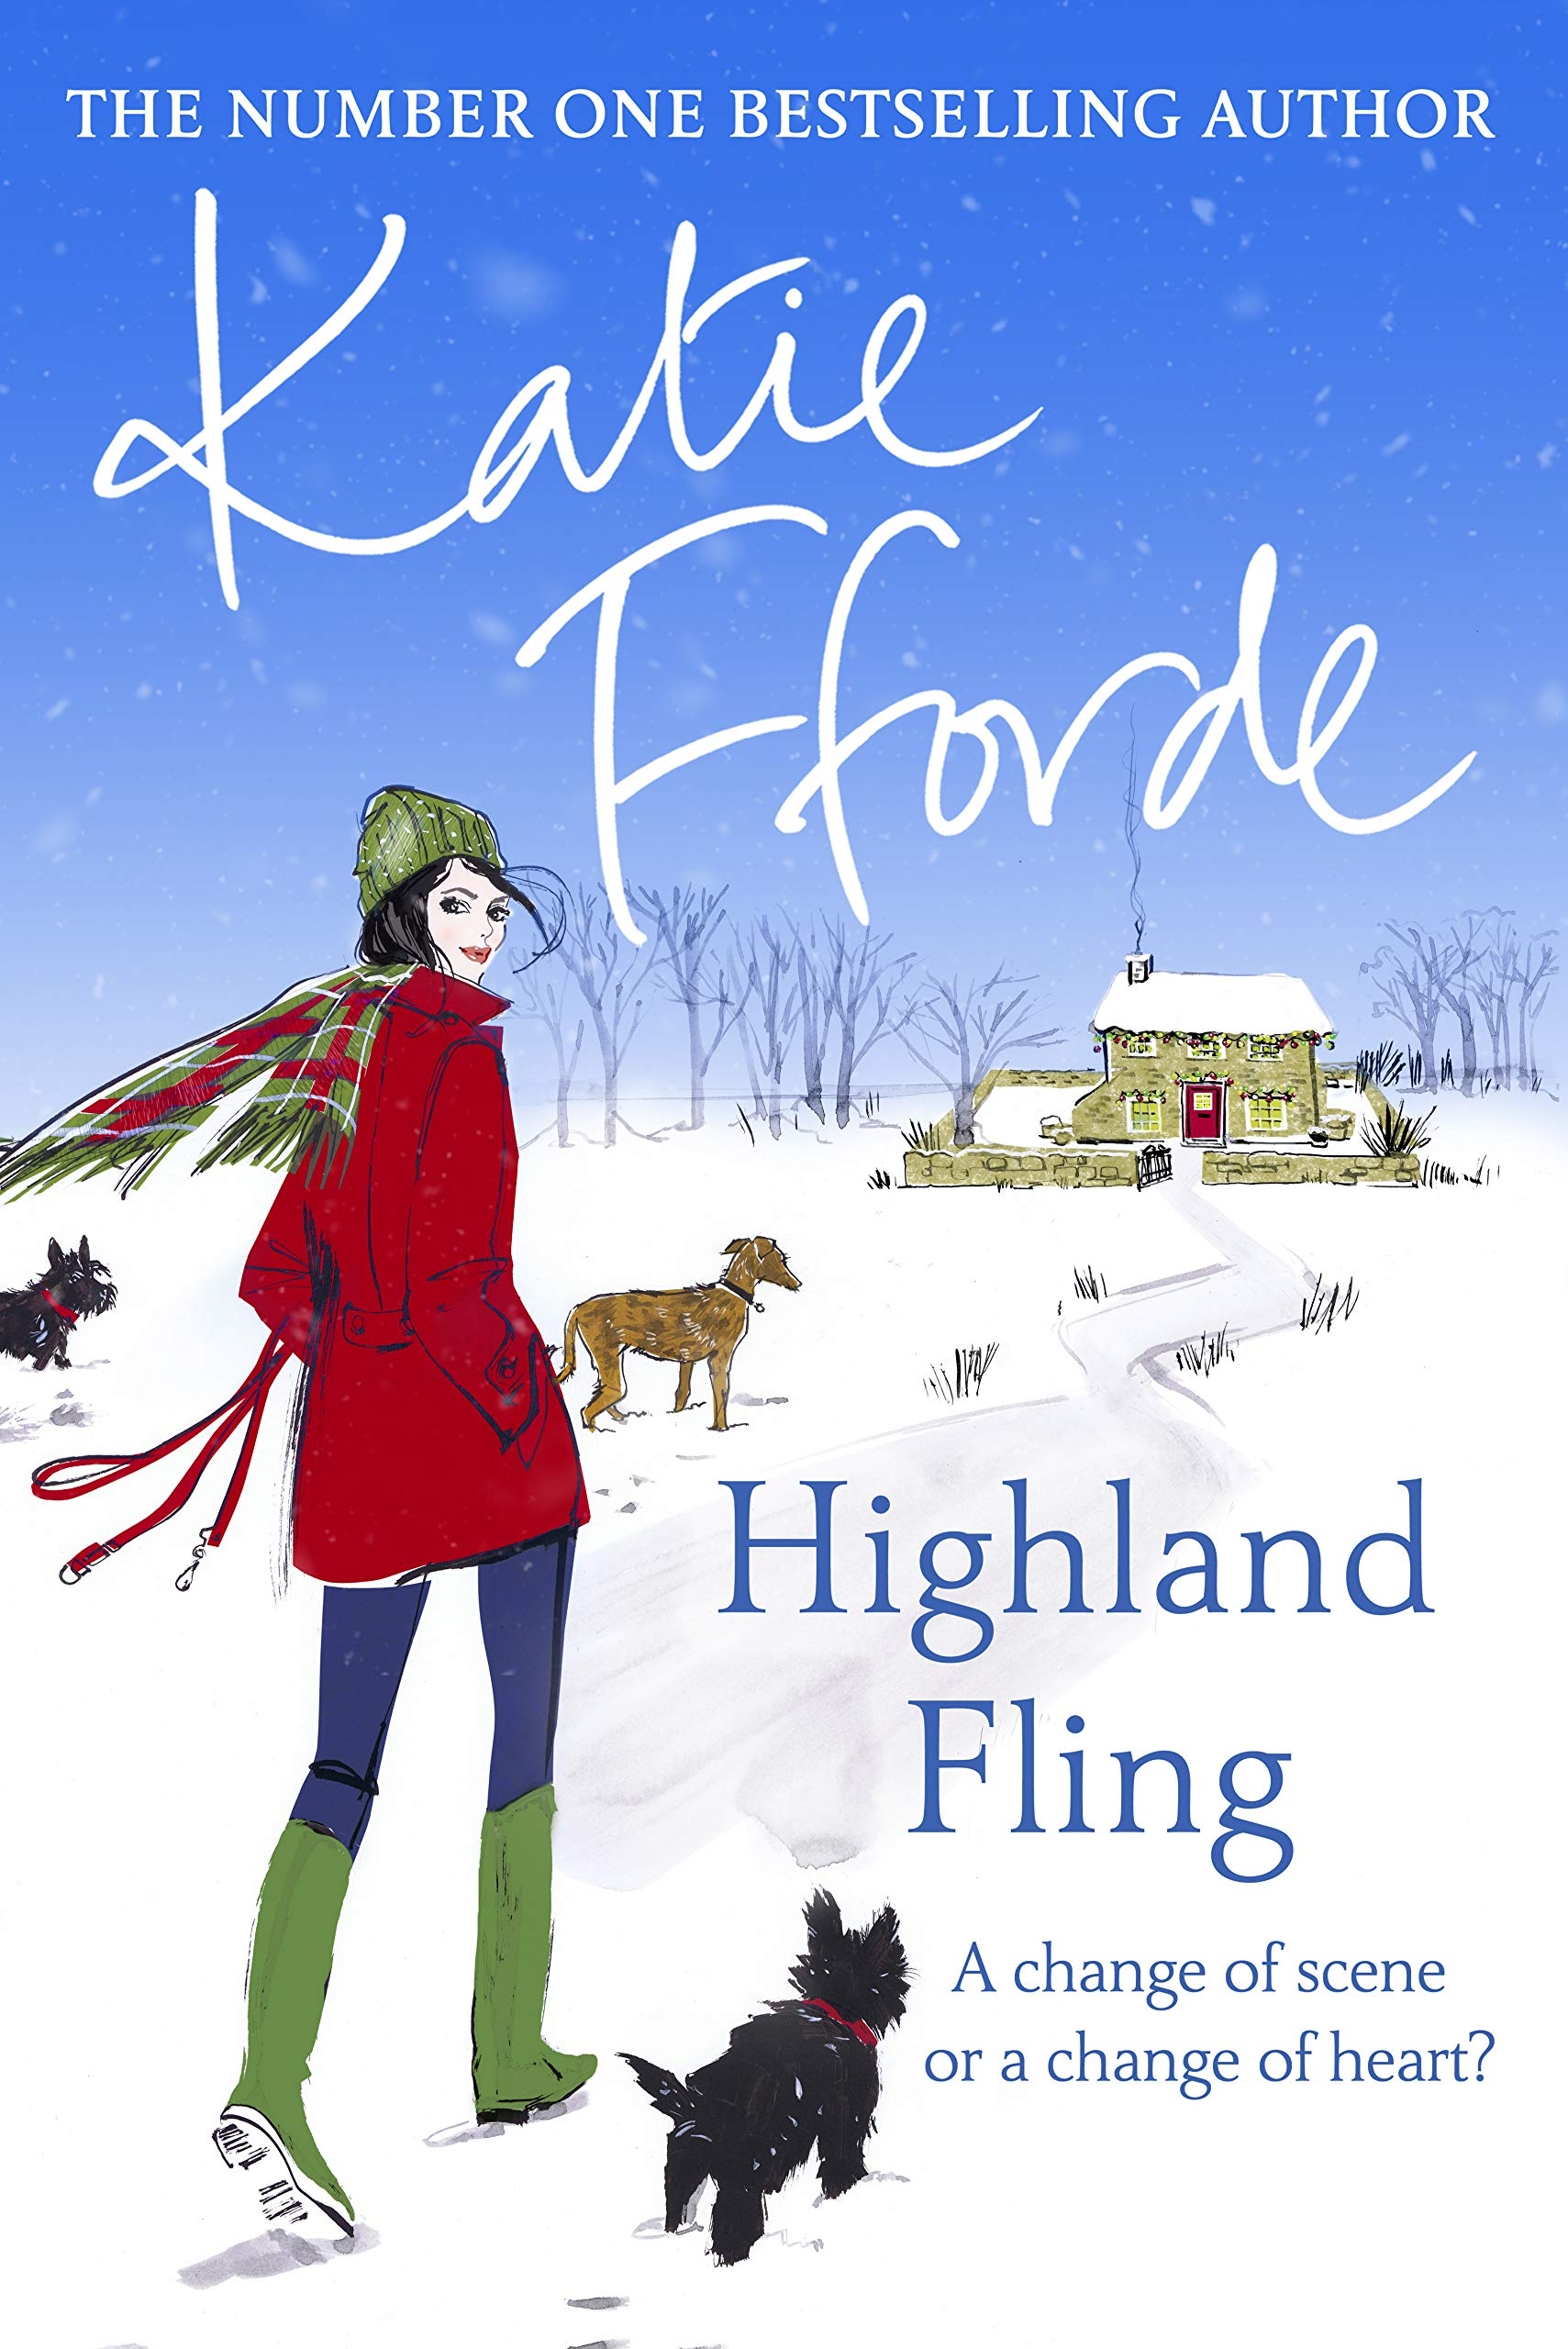 Highland Fling: Amazon.co.uk: Katie Fforde: 9780099415558: Books